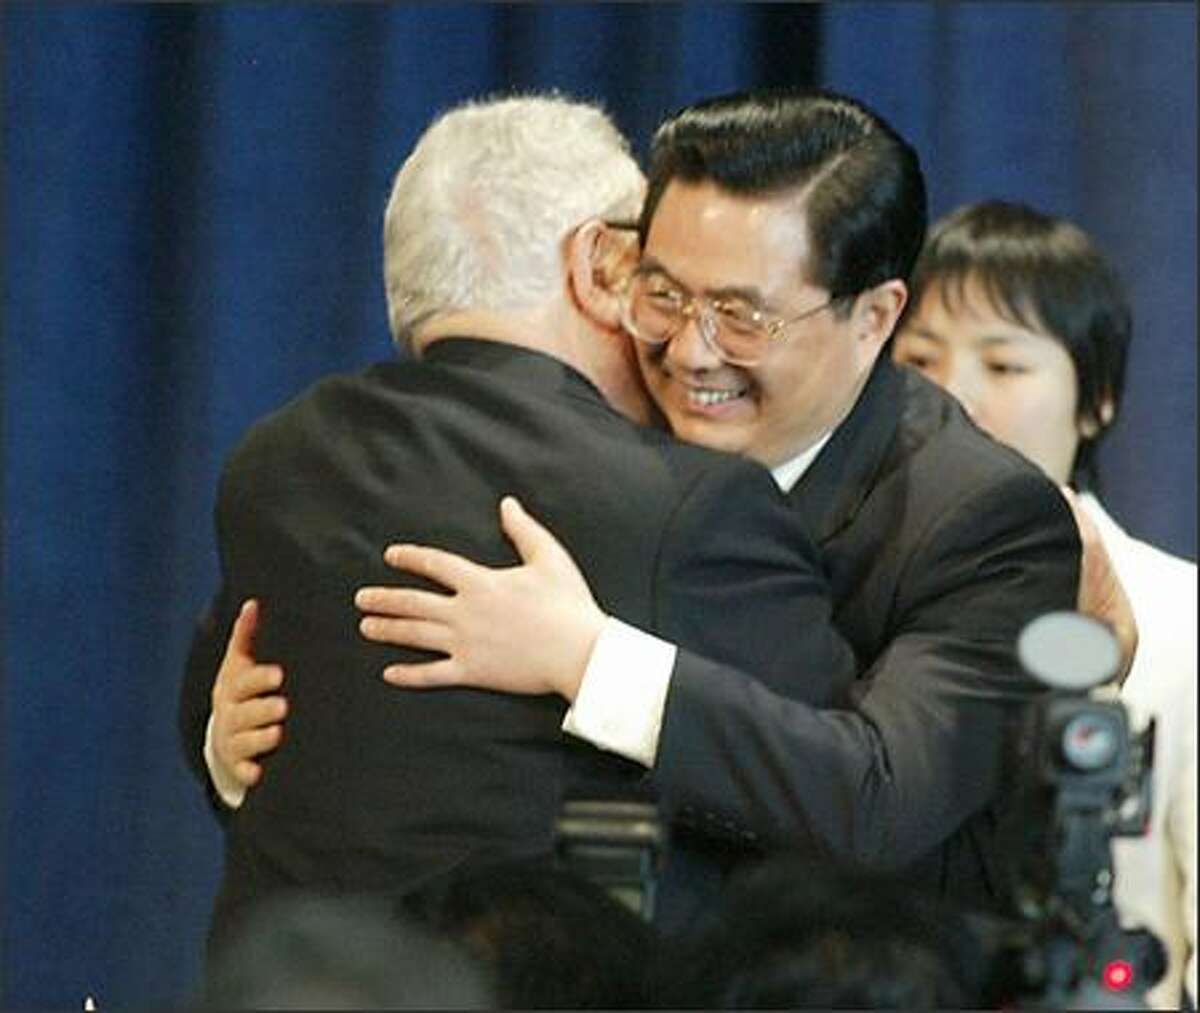 Chinese President Hu Jintao greets former Secretary of State Henry Kissenger with a hug upon his arrival at the Friendship Luncheon held at Future of Flight in Mukilteo.